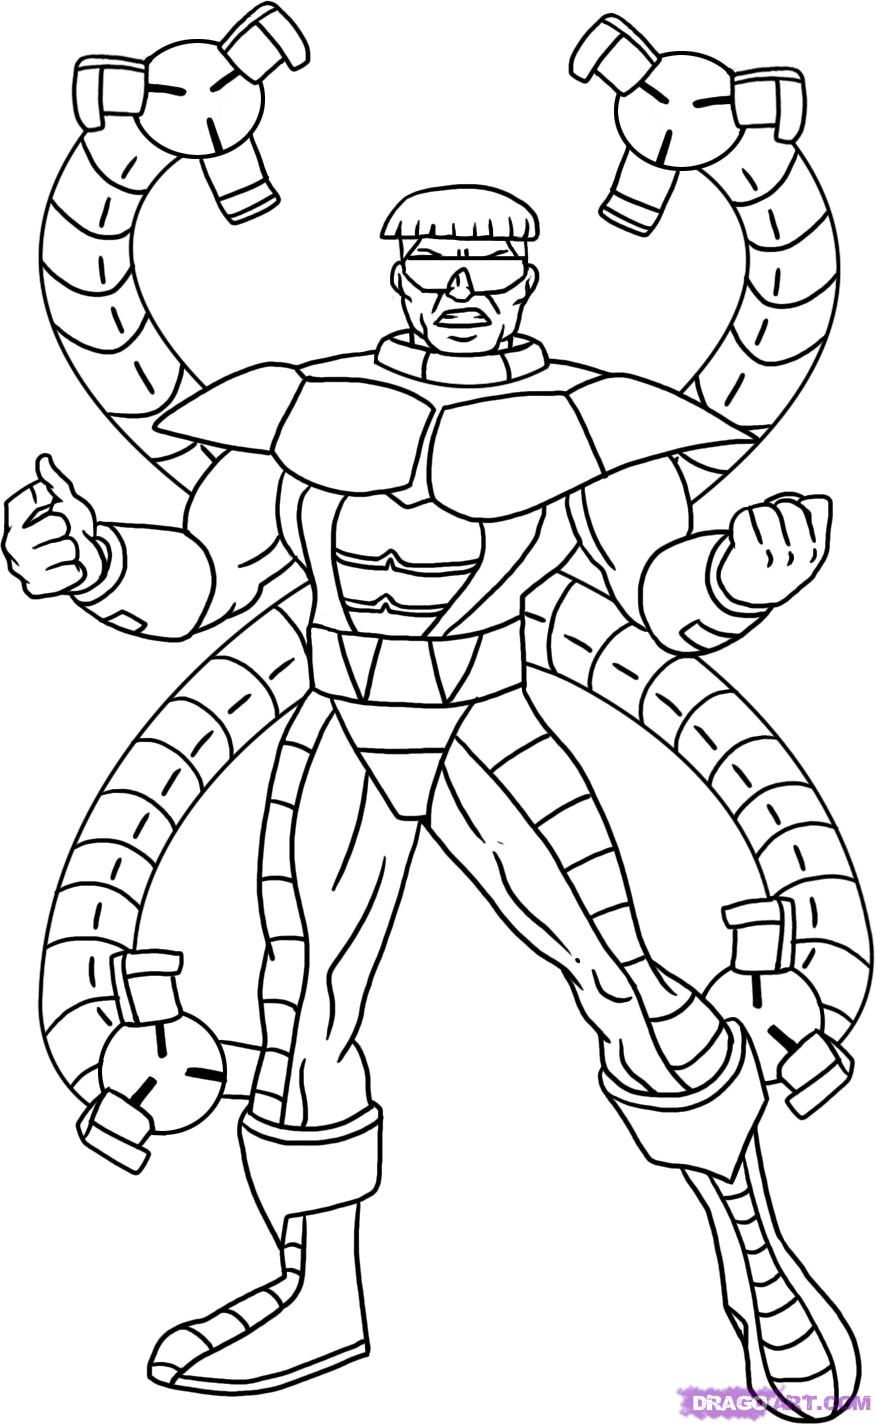 printable marvel coloring pages marvel superhero iron man 3 flying and runnning colouring printable coloring pages marvel